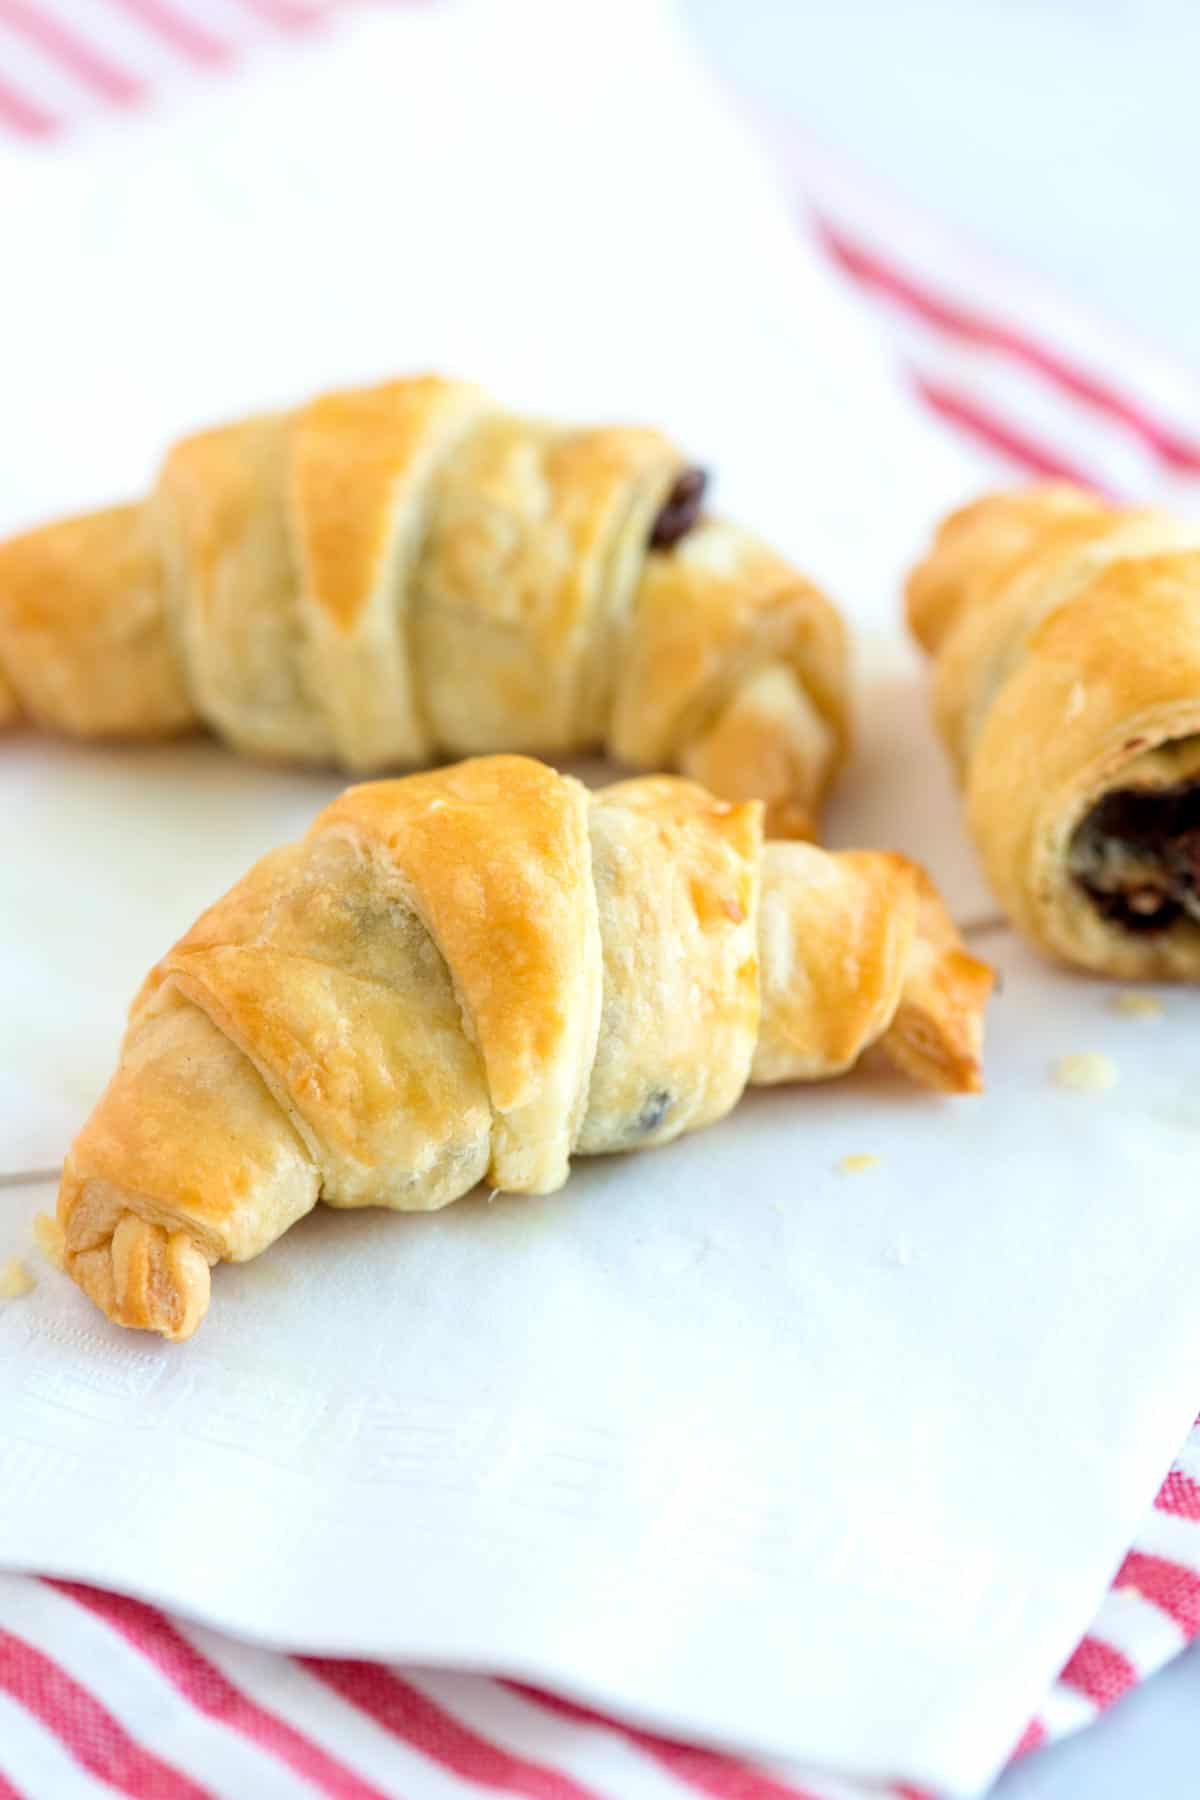 How to Make Chocolate Croissants in 30 Minutes